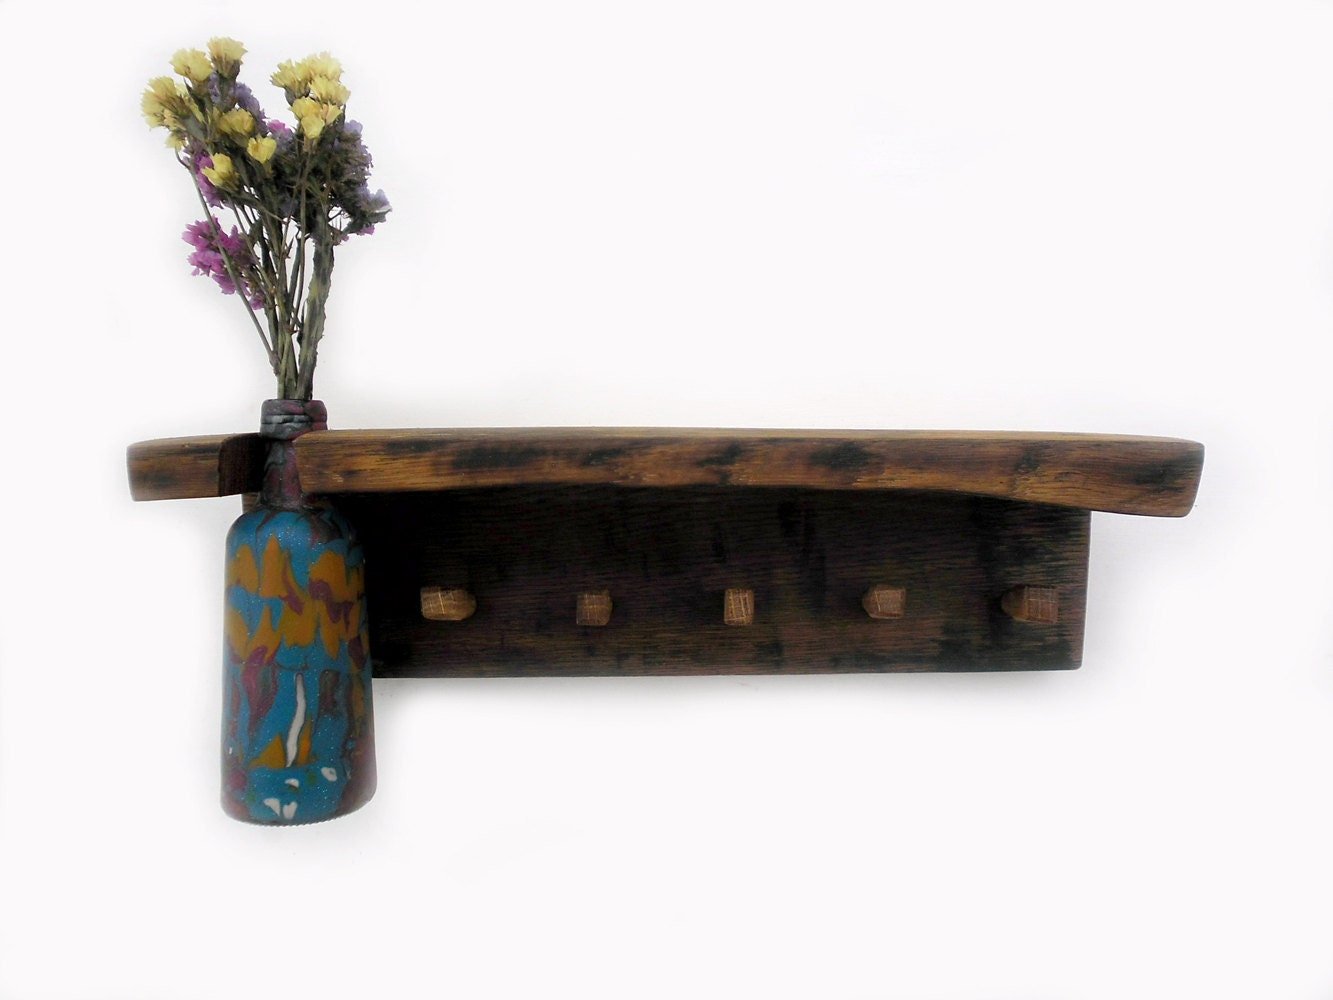 Wooden Key Holder With A Shelf And Vase By Thirdcloudtotheleft